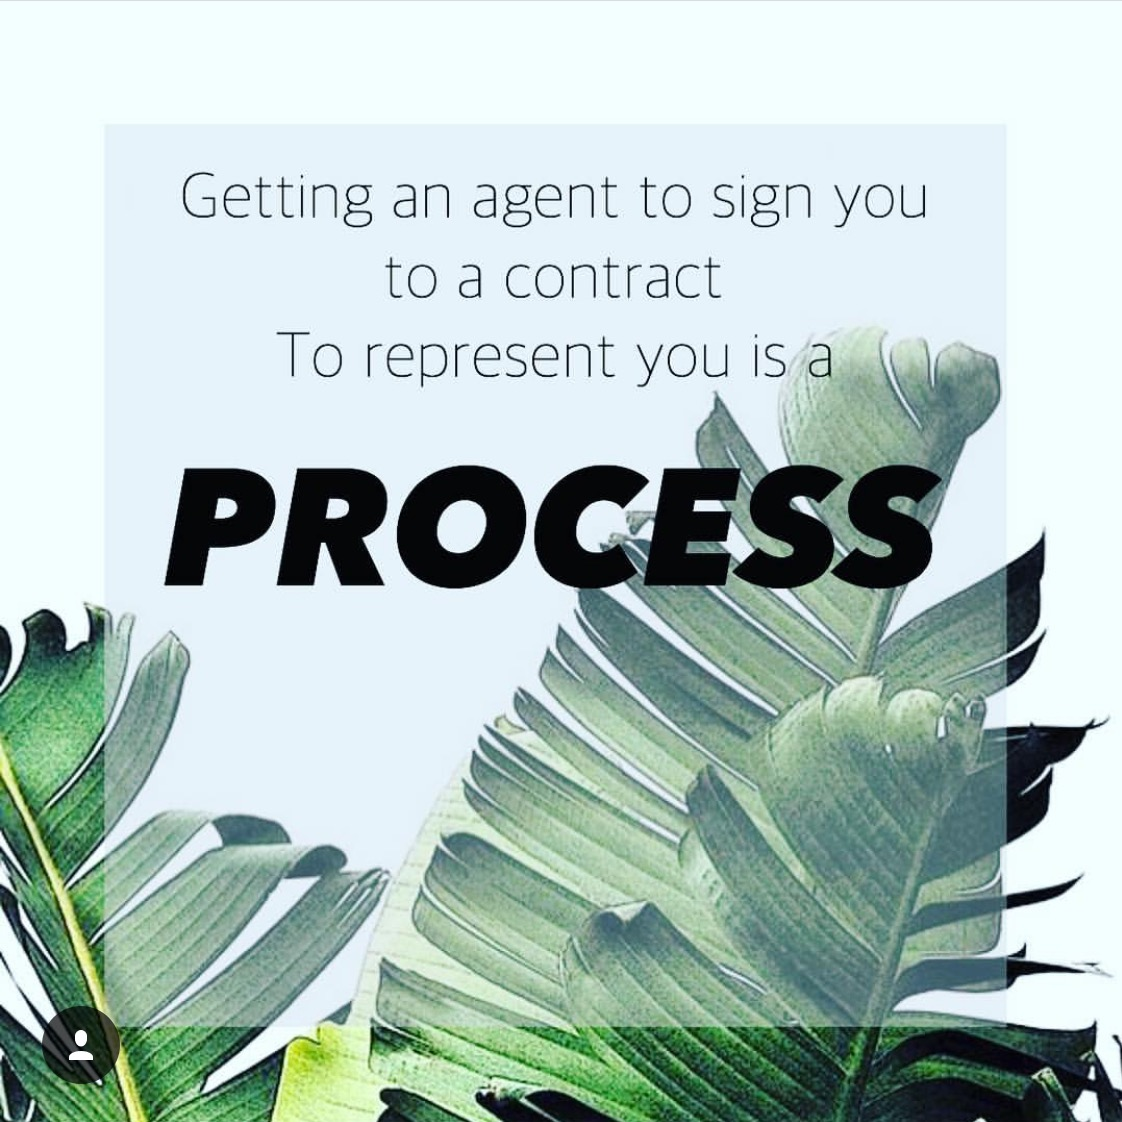 "Pre-professional Package - Great for: Actors at all levels who aspire to gain agency representation, beginner actors who are not yet ""agency ready,"" actors who have been unsuccessful gaining representation, + more!Time to get ""agency ready!"" Bring a notepad! Acting Talent + Acting Biz = Agency Ready! This package covers everything needed to be considered for agency representation and then breaks it down into achievable, doable steps for actors.● Learn what you need to make an agent see your potential● Get your resumé made over into a competitive resumé to increase your competitive edge● Master the materials agents are actively searching for● Learn agency contracts and how to win representation at agency meetings● Learn about scams + more!Here, actors learn what is needed to be seriously considered for agency representation allowing them to more sucessfully pursue securing representation independently"